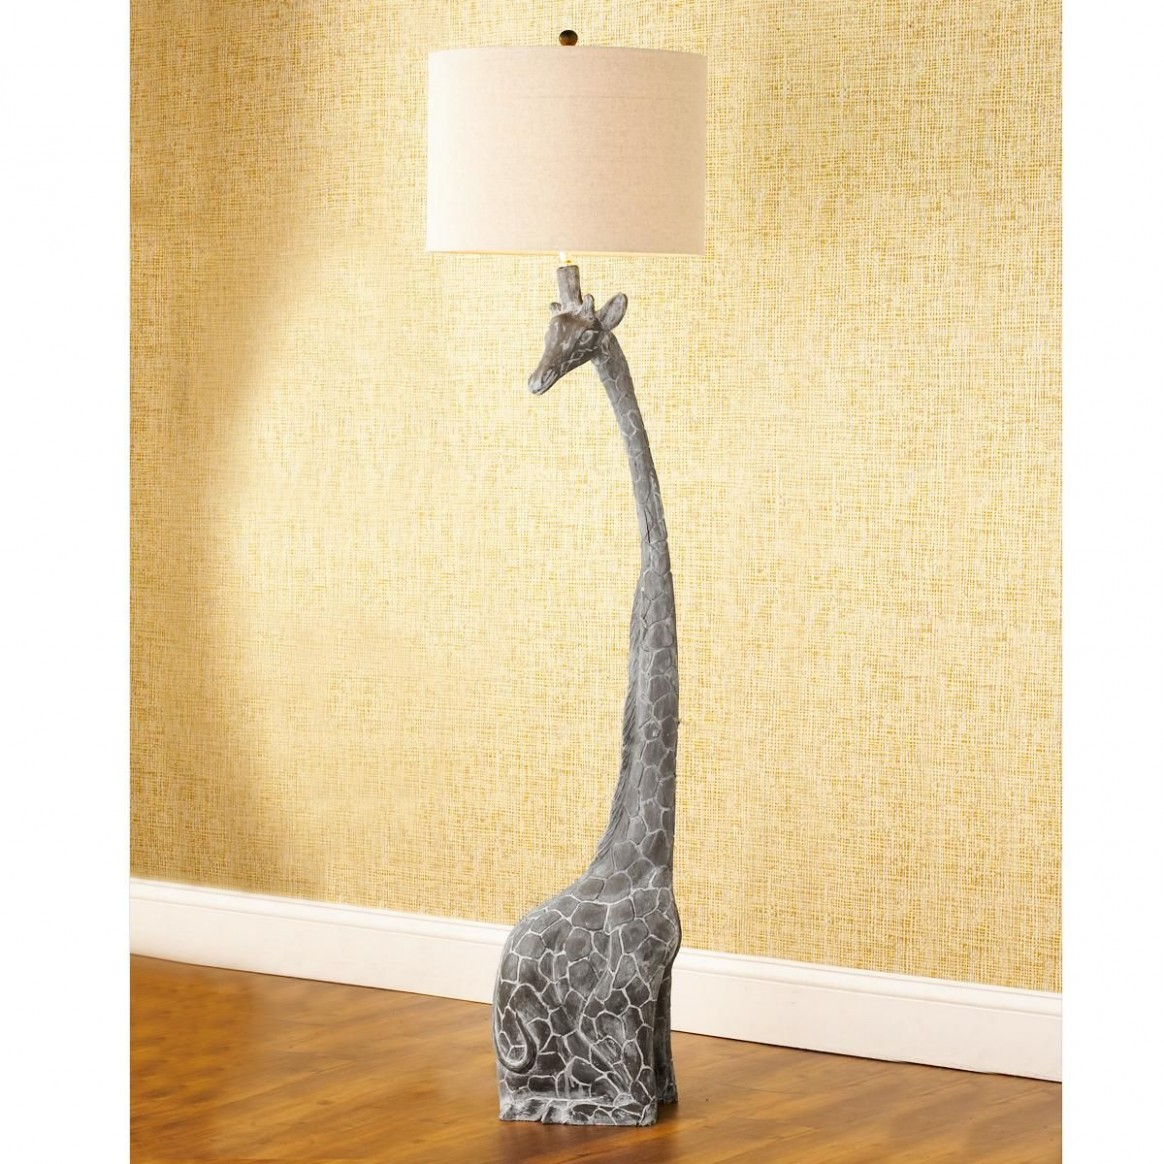 Pin on Home Goods - Baby Room Floor Lamp